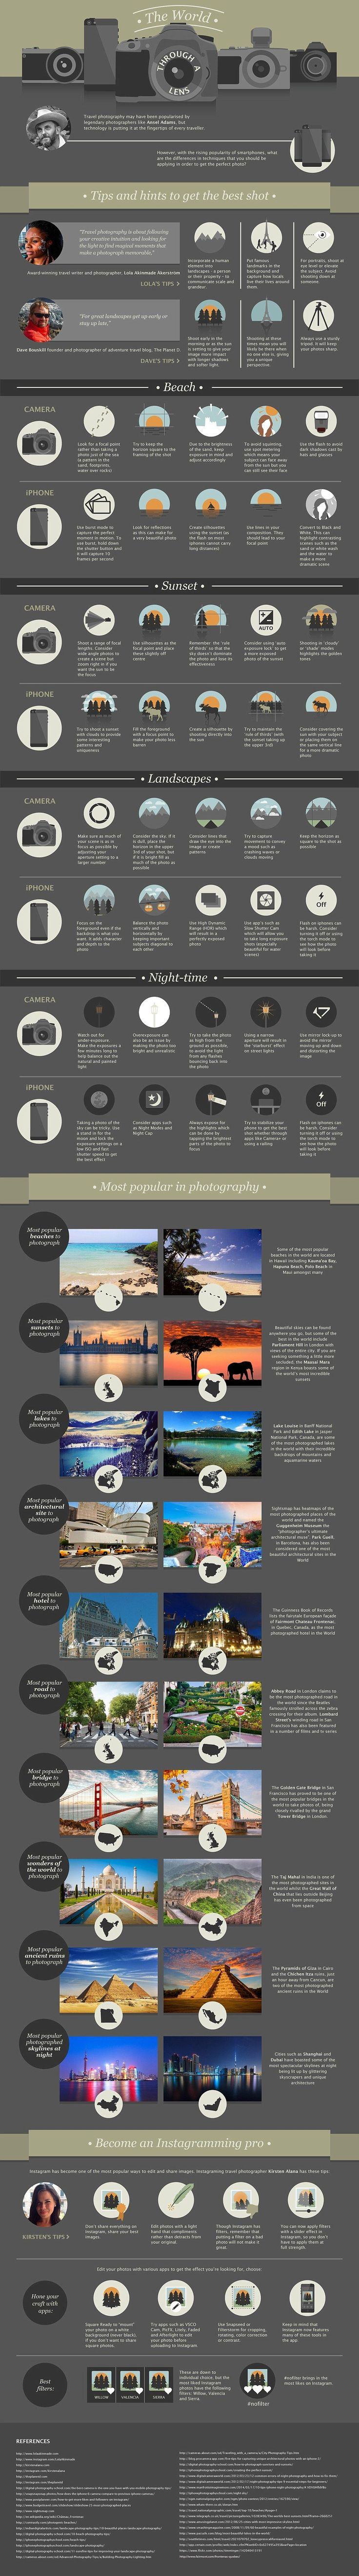 This infographic is built around the lenses, but instead helps inform you of which lenses you should use in different settings and different situations, which I like.